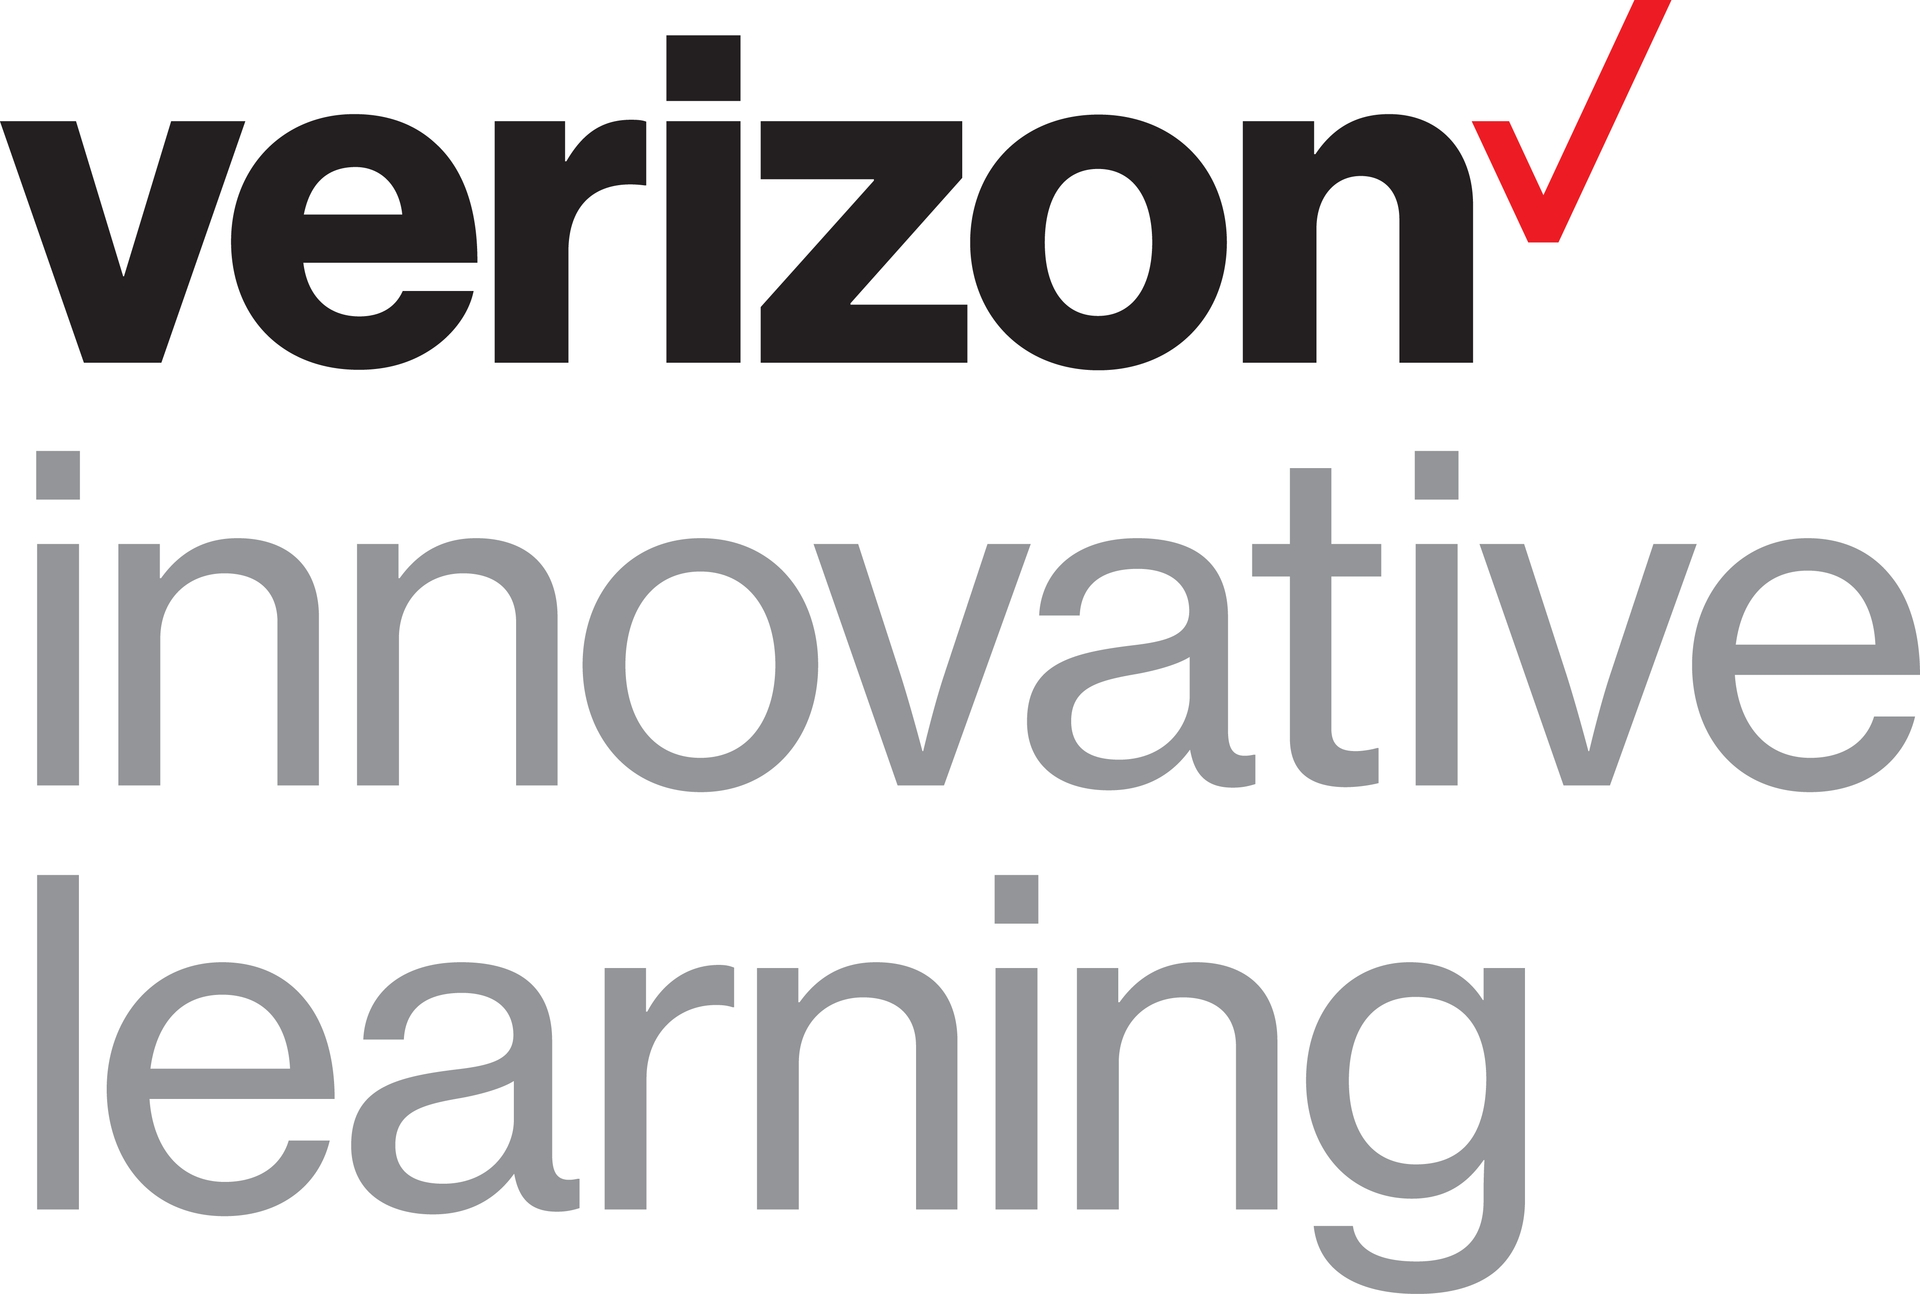 Verizon Innovative Learning logo